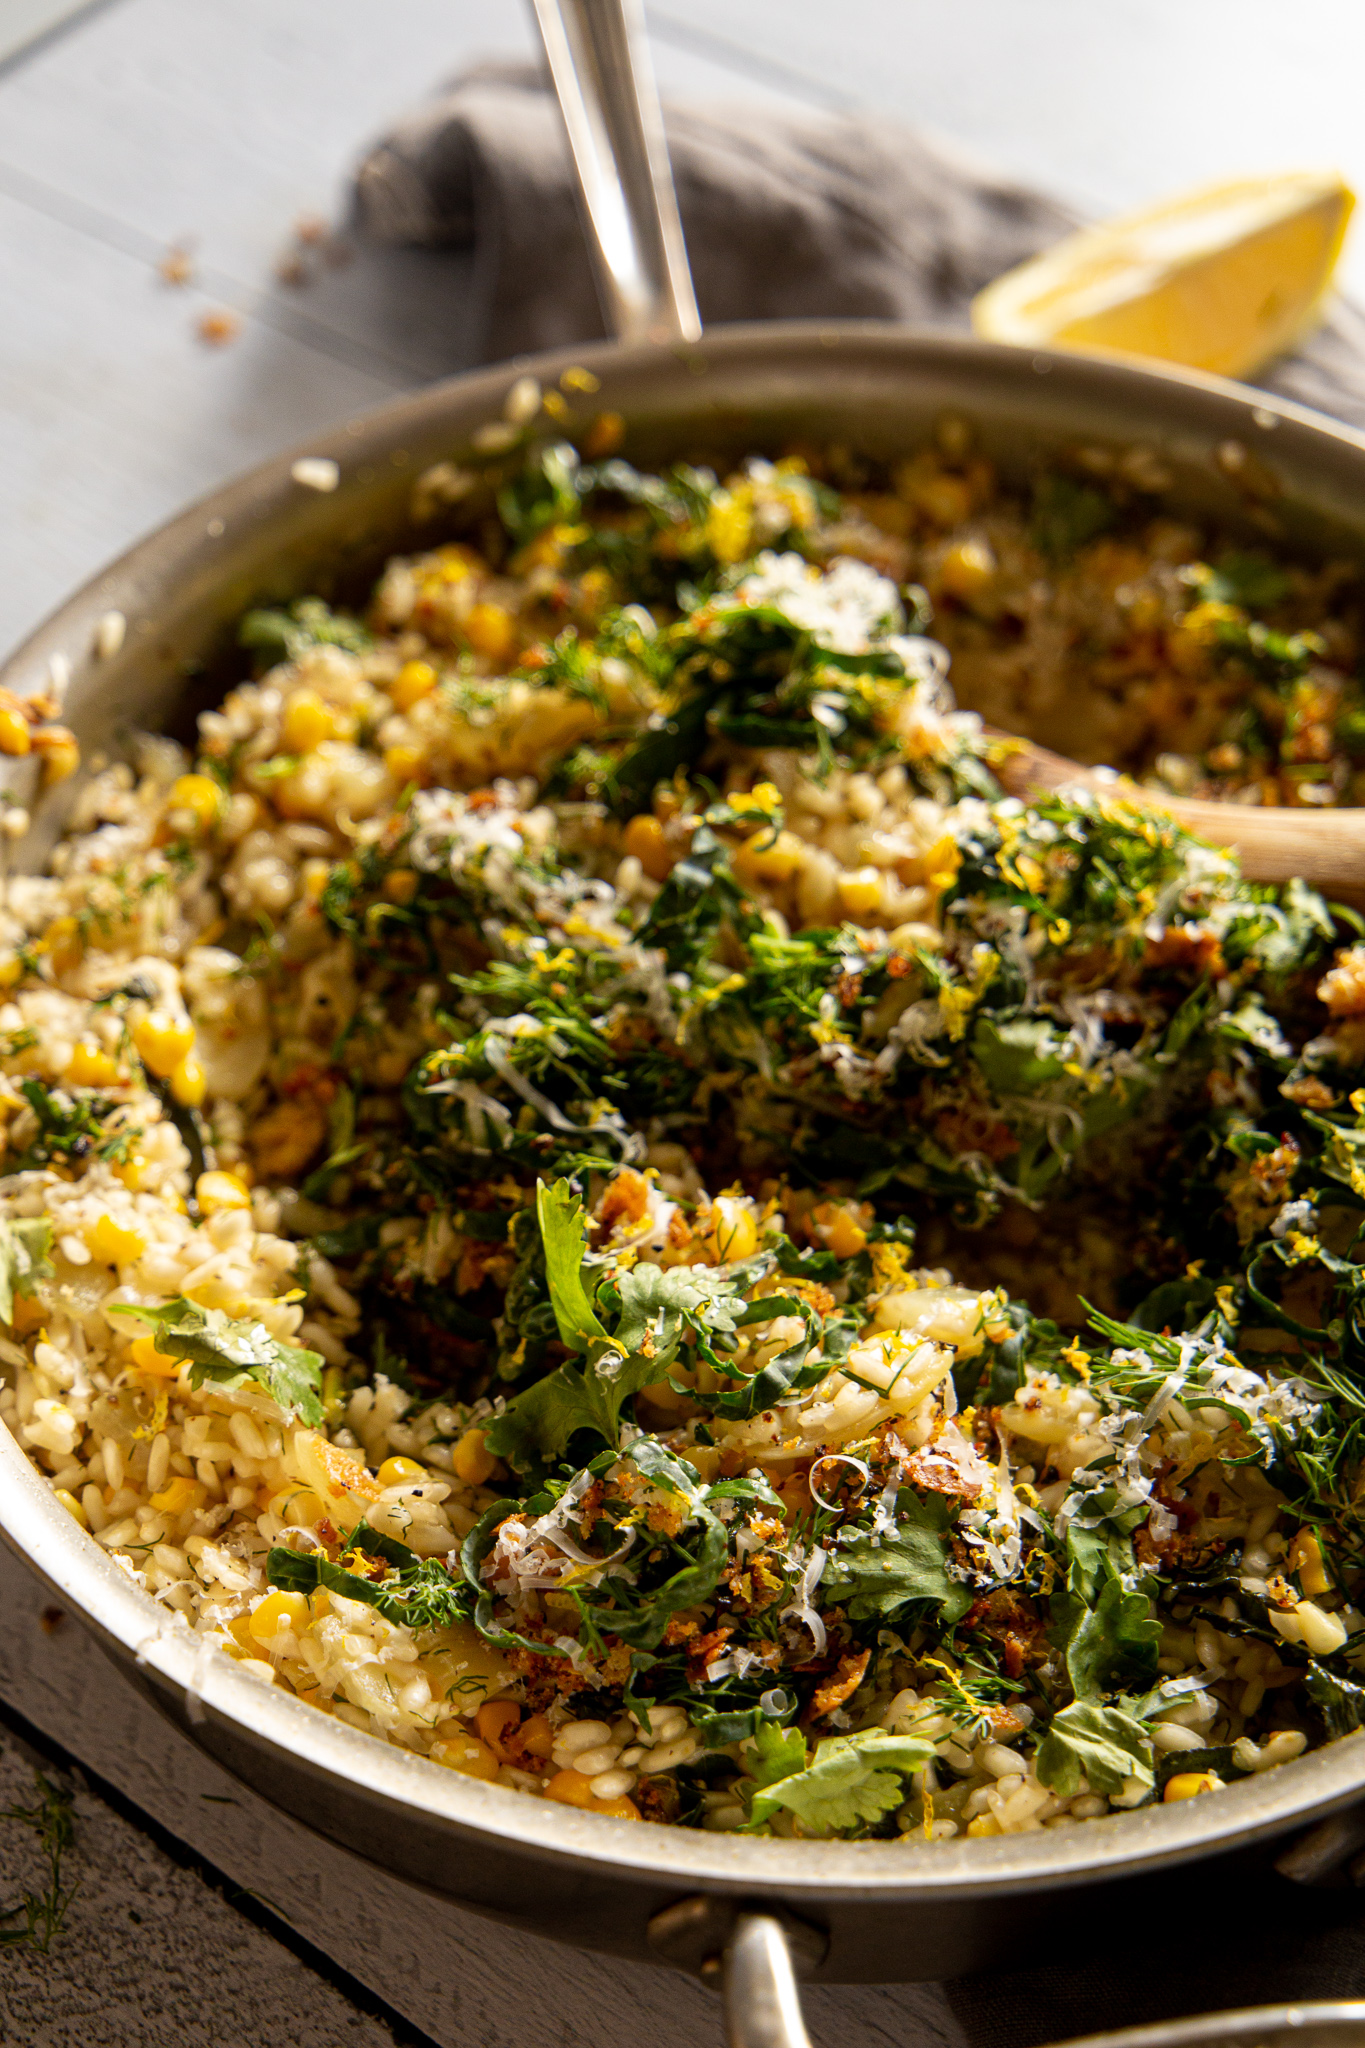 Herby Corn Risotto - Summer sings in a skillet.